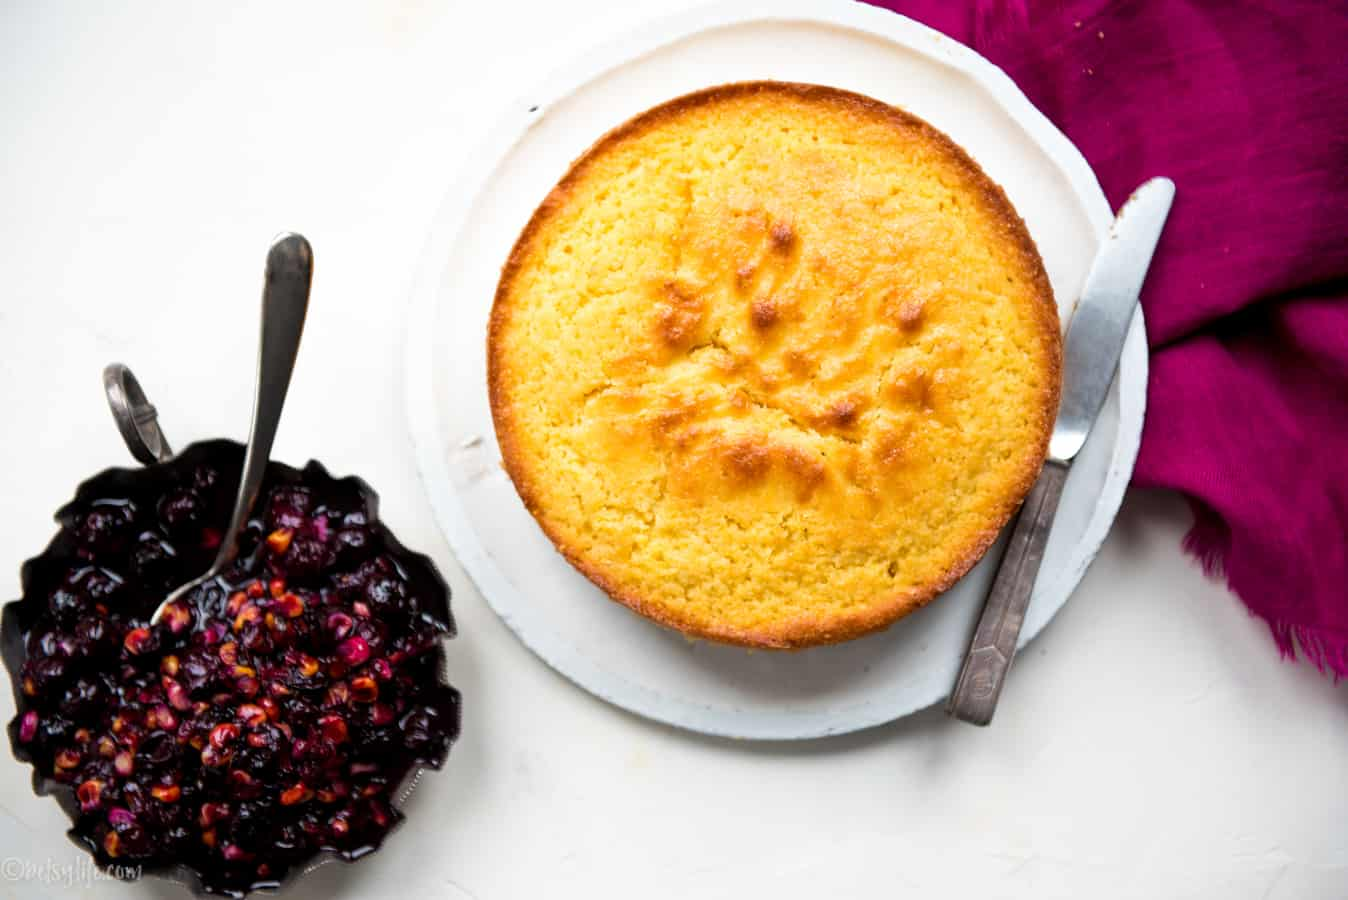 Round corn cake on a white plate next to a metal dish filled with corn & blueberry compote